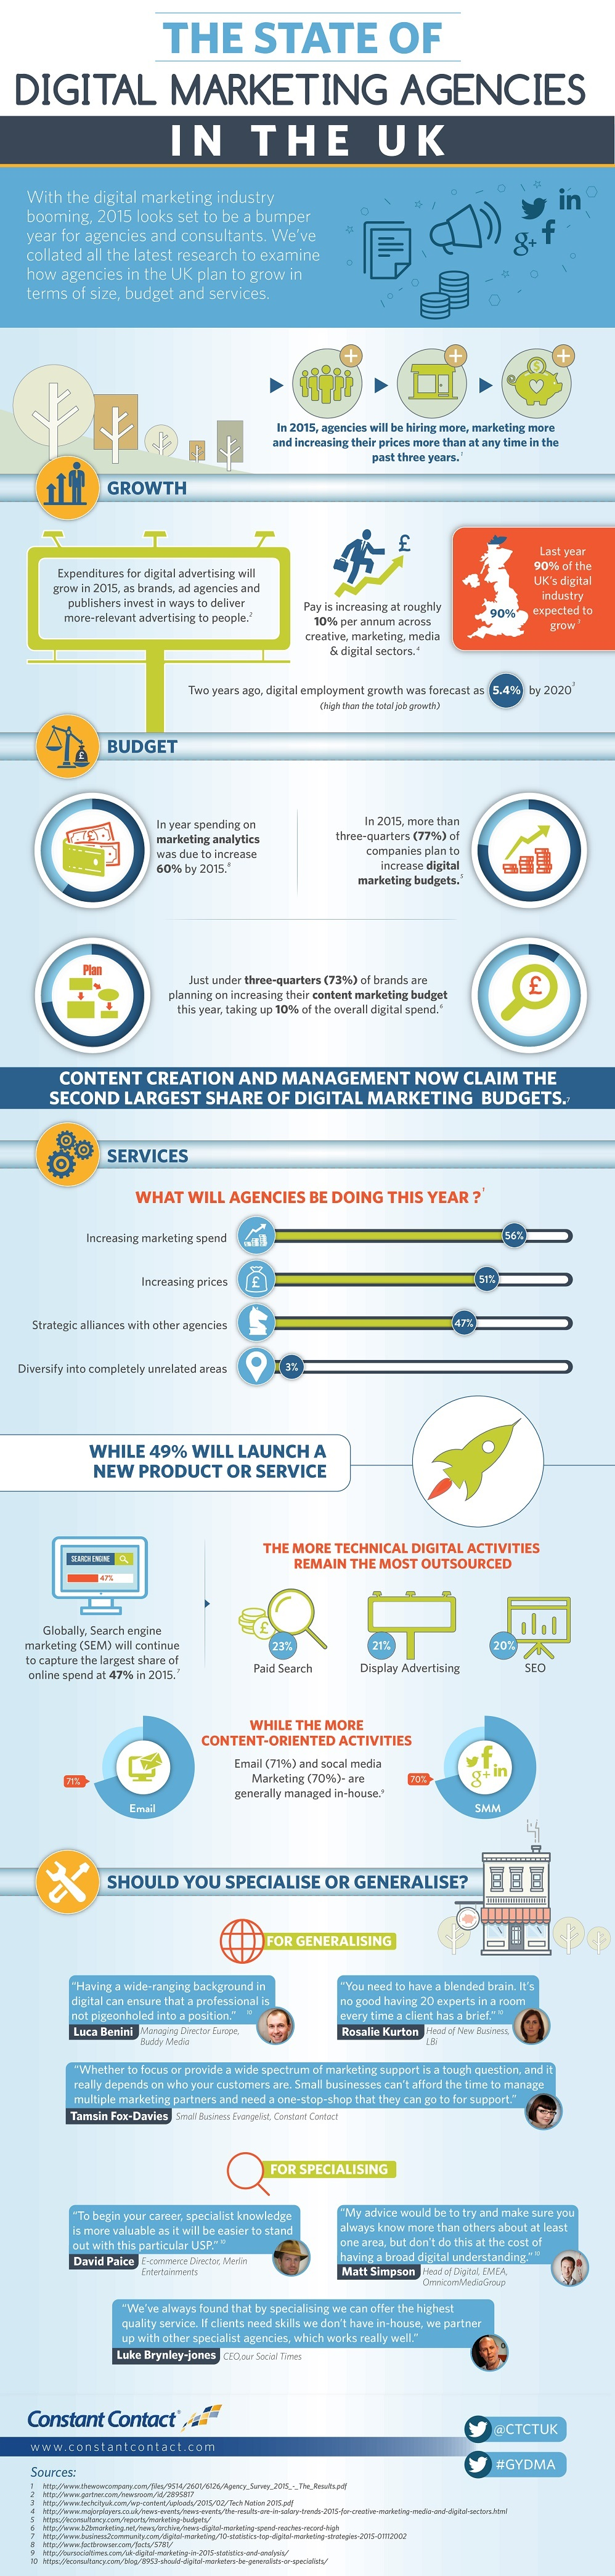 The-state-of-digital-marketing-agencies-in-the-UK-infographic_edited